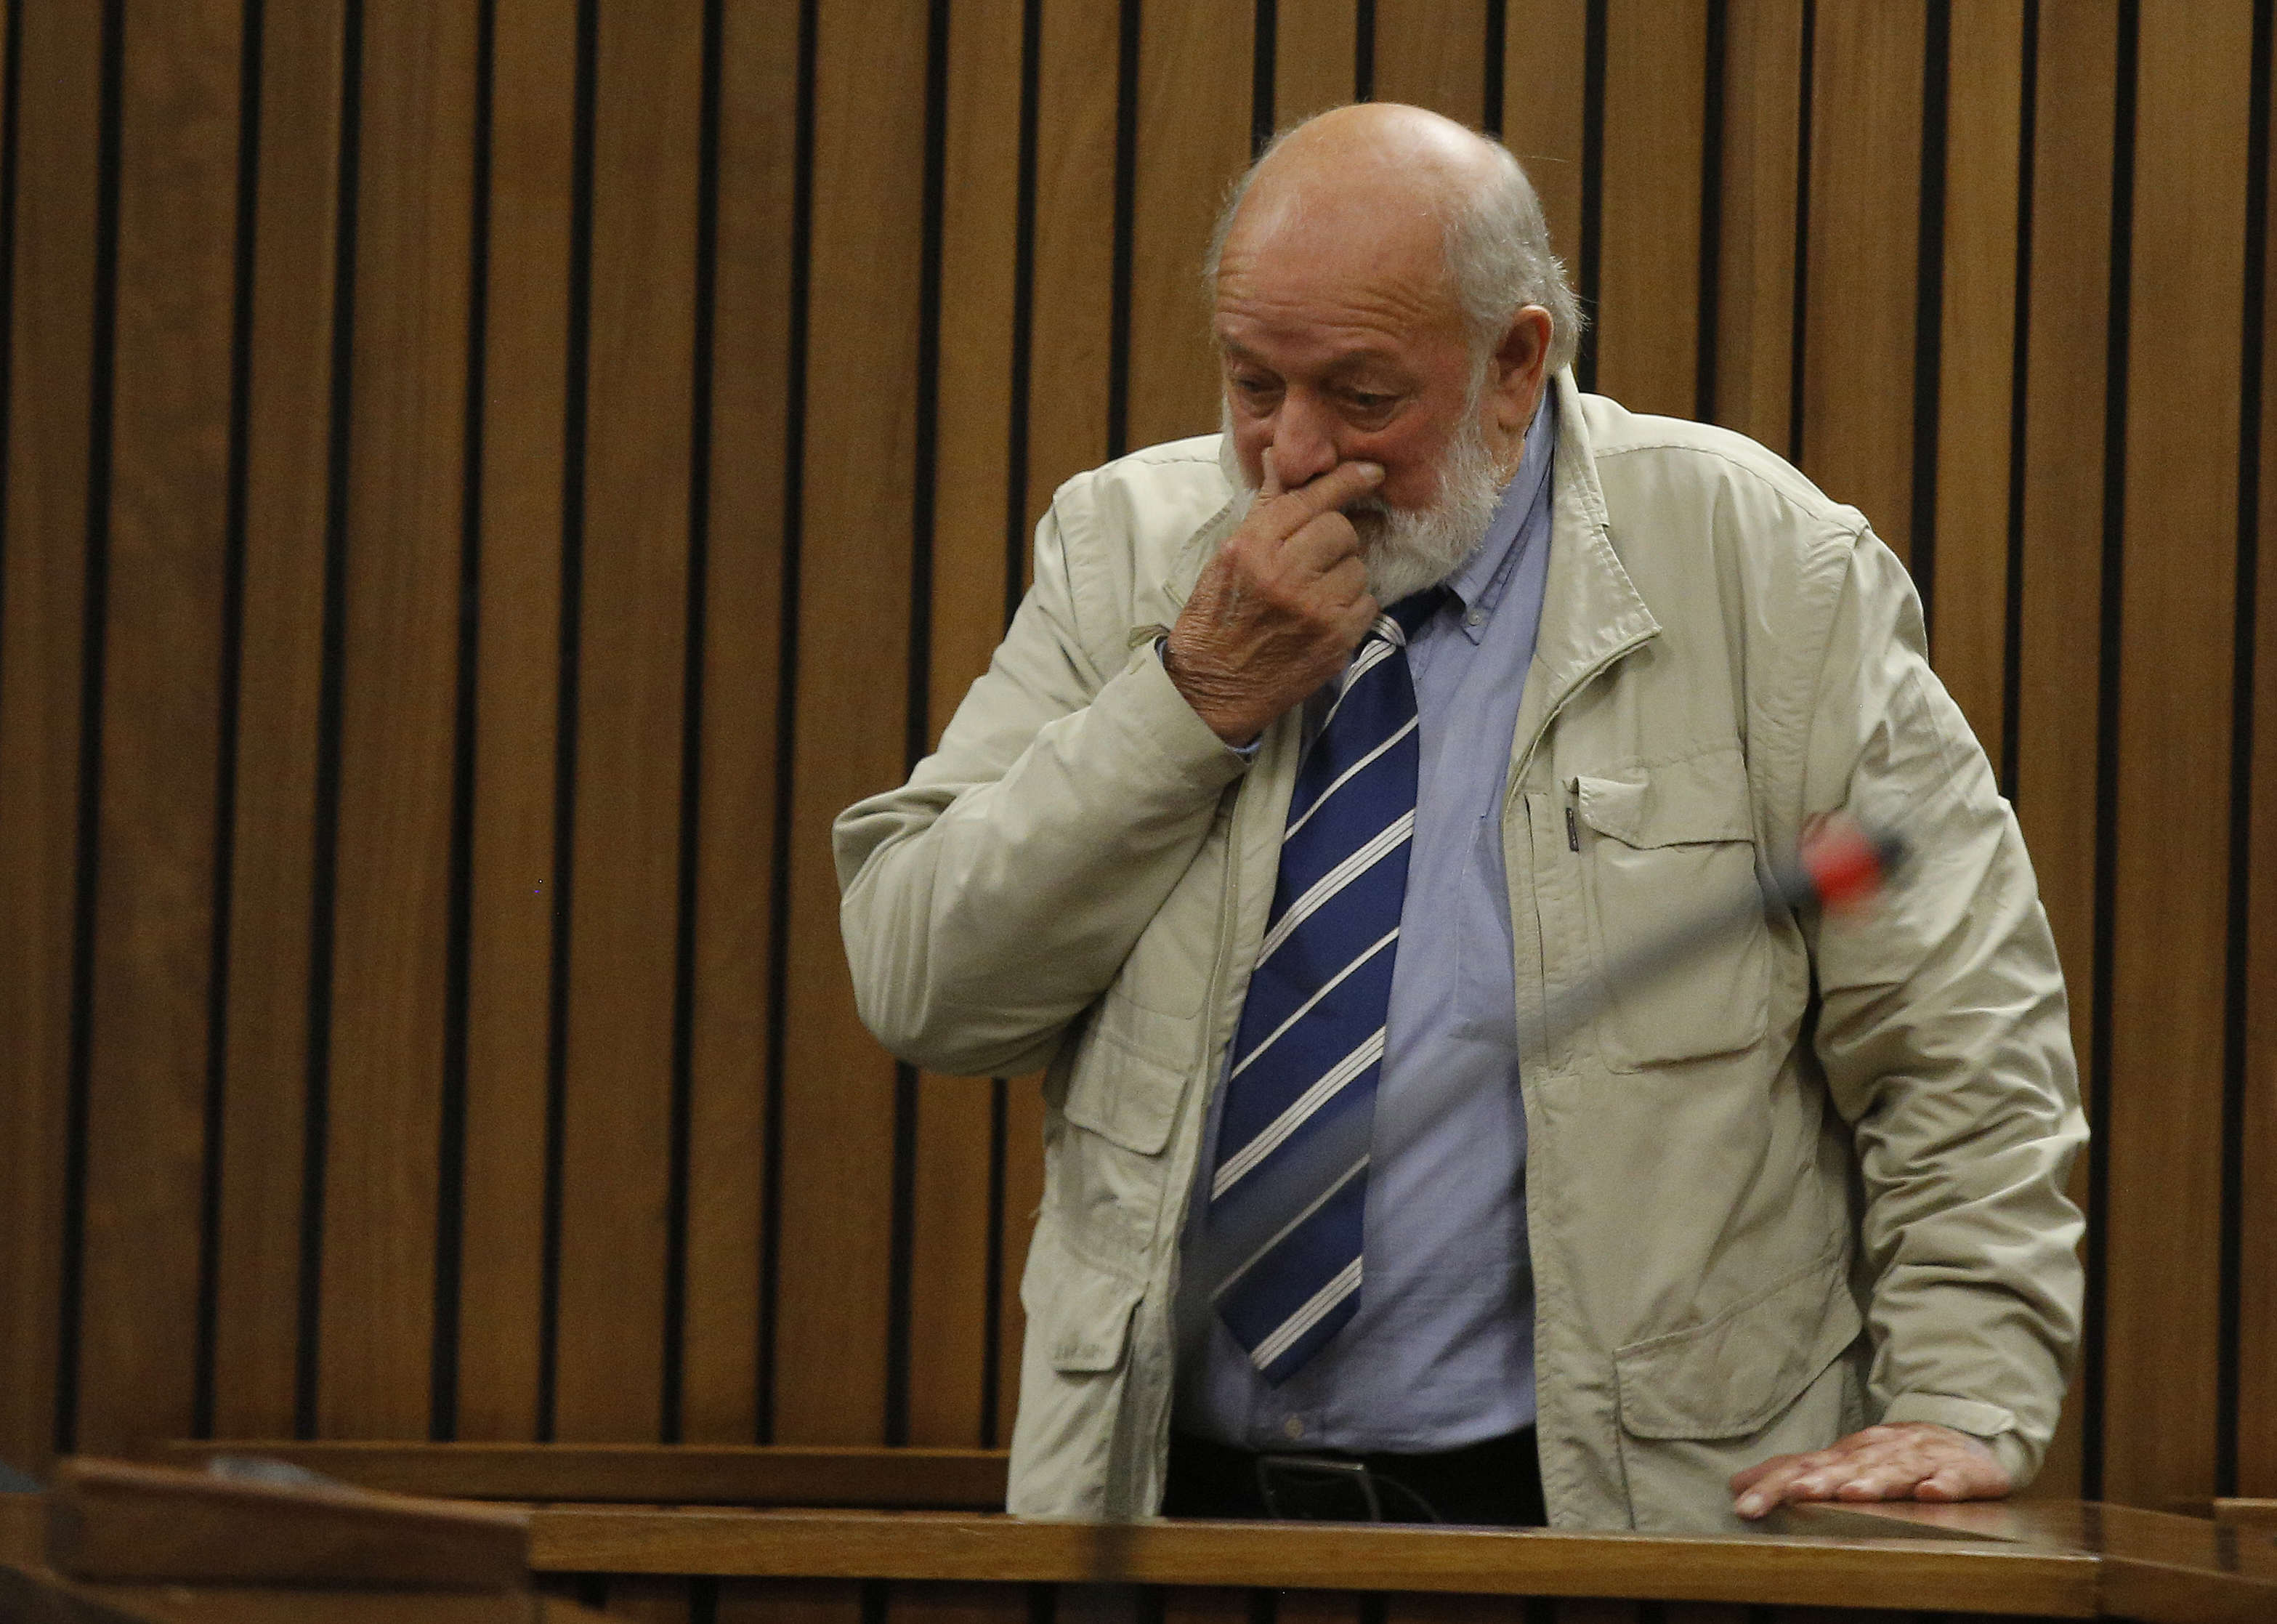 Graphic Photos Of Reeva Steenkamps Body Her Father Wants World To See GettyImages 540053594